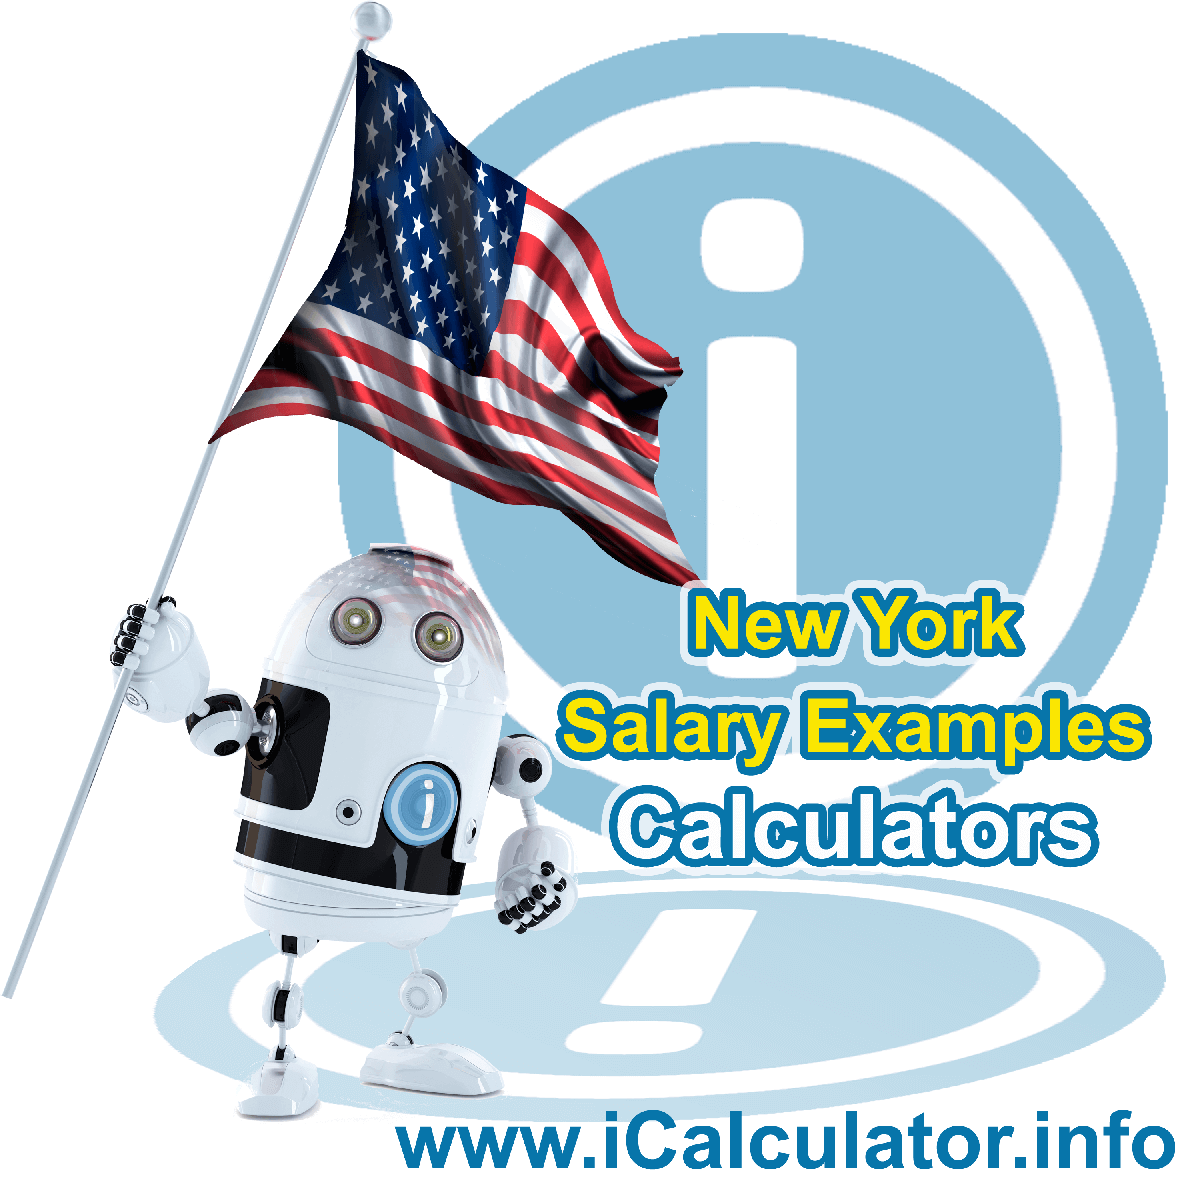 New York Salary Example for $40.00 in 2021 | iCalculator™ | $40.00 salary example for employee and employer paying New York State tincome taxes. Detailed salary after tax calculation including New York State Tax, Federal State Tax, Medicare Deductions, Social Security, Capital Gains and other income tax and salary deductions complete with supporting New York state tax tables